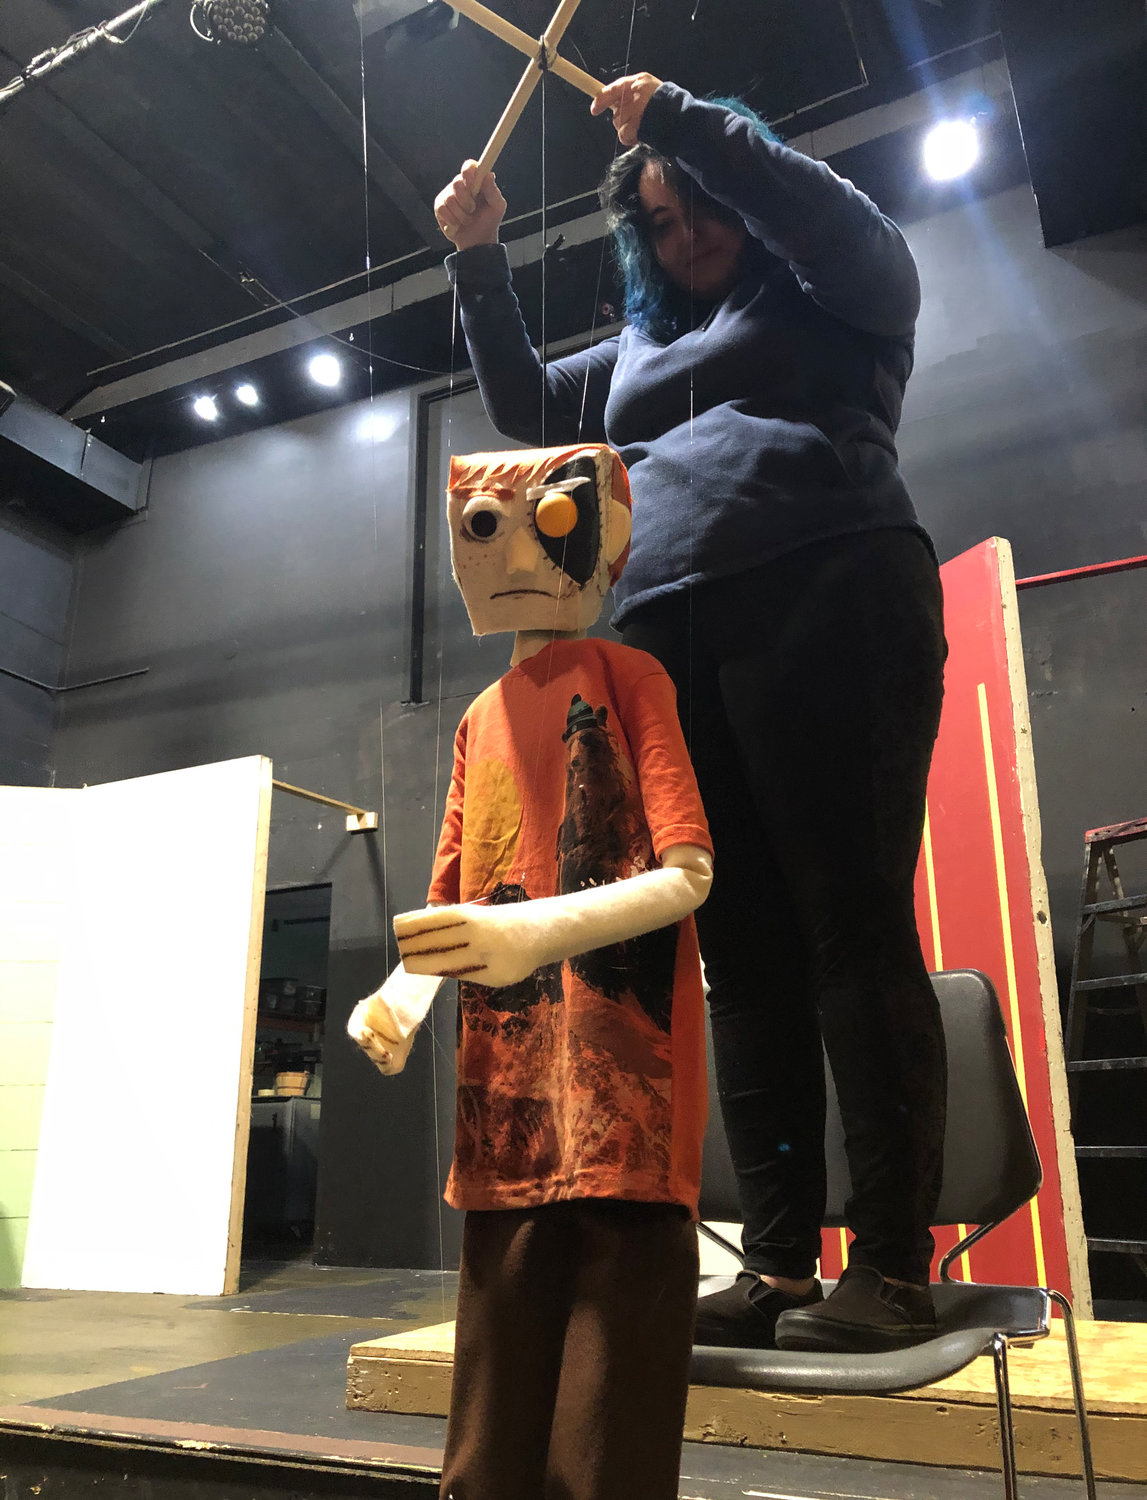 Taylor Tanner, who portrays Laertes, operates a custom handmade marionette created by local artist Zach Davis.